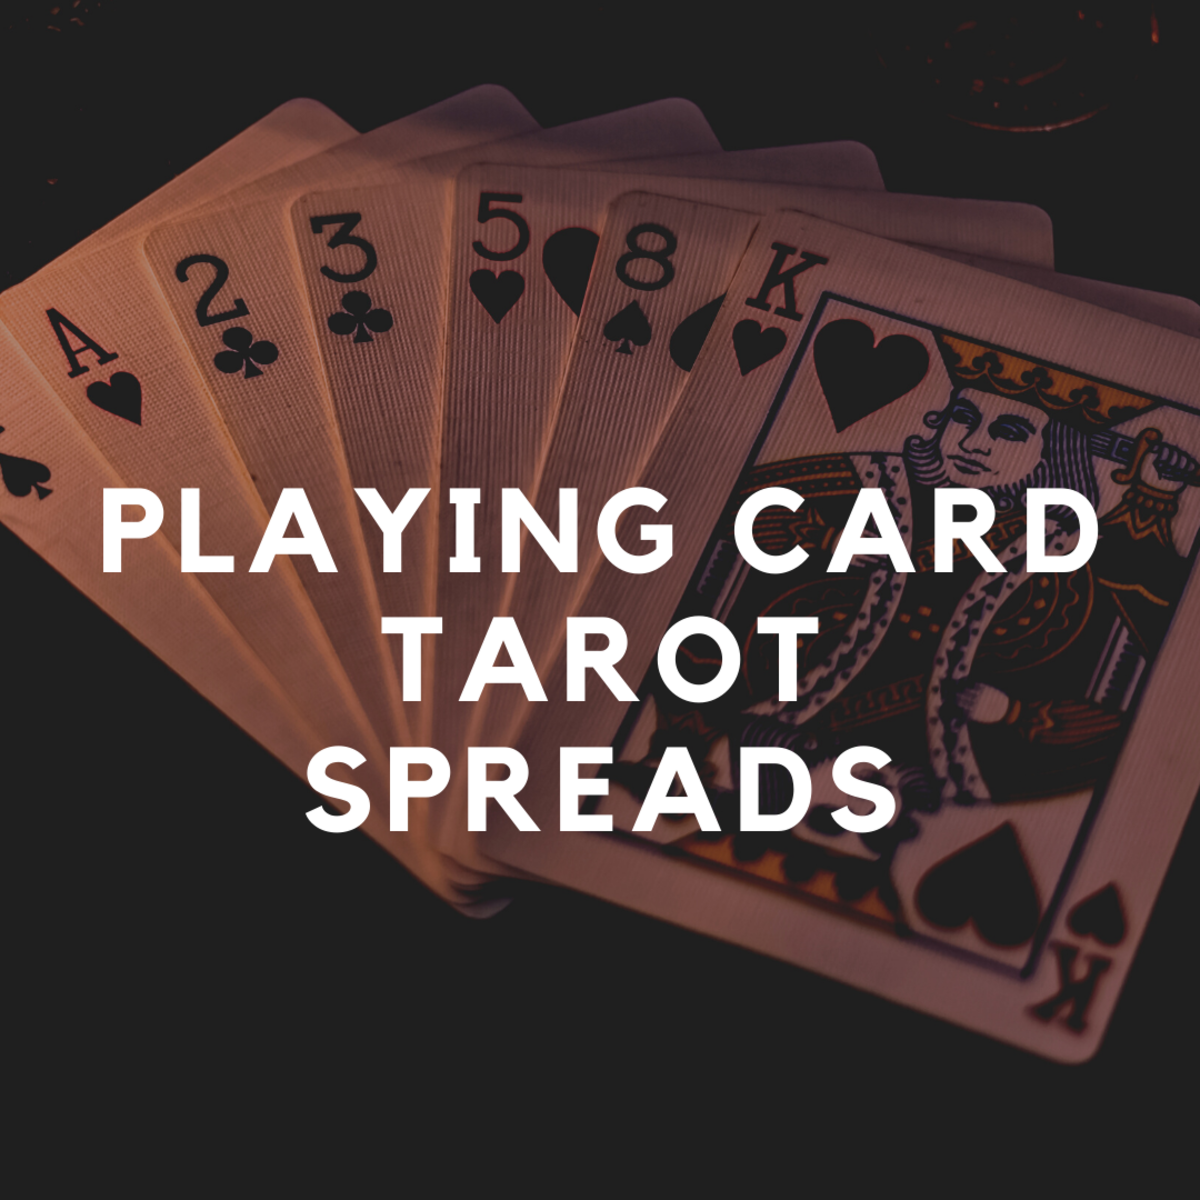 Read on to learn how to do a reading with playing cards!